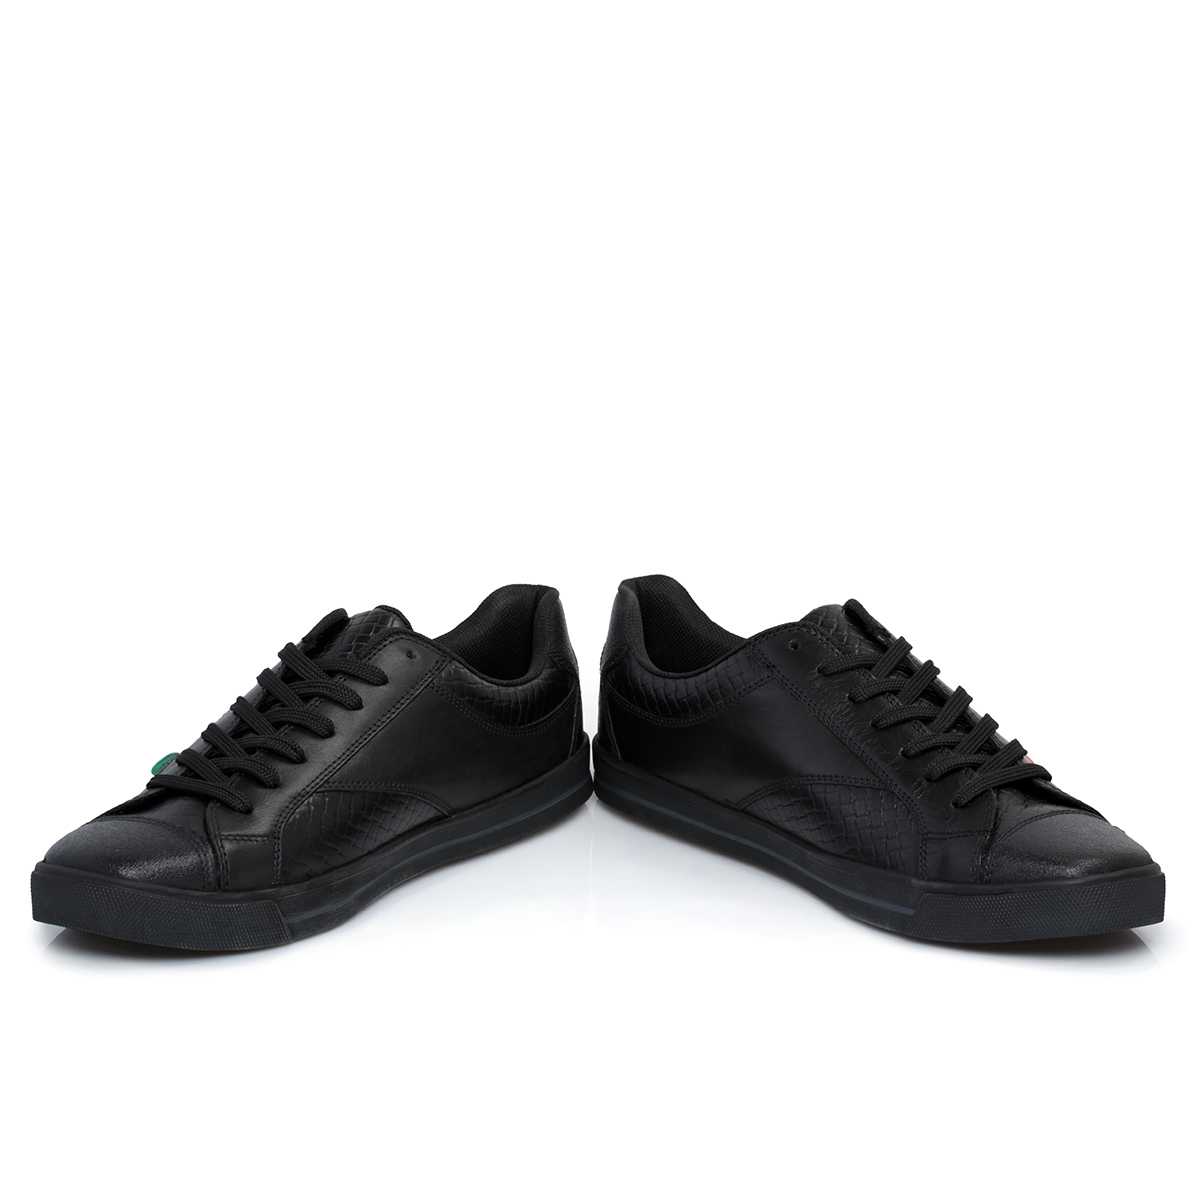 More Details Balenciaga Men's Race Runner Mesh & Leather Sneakers, Black/Red Details Balenciaga trainer sneaker in mesh with calf leather trim. Bootie construction forms to foot. Round toe. Elastic band across vamp. Lace-up front. Looped pull at tongue. Contrast leather heel counter.